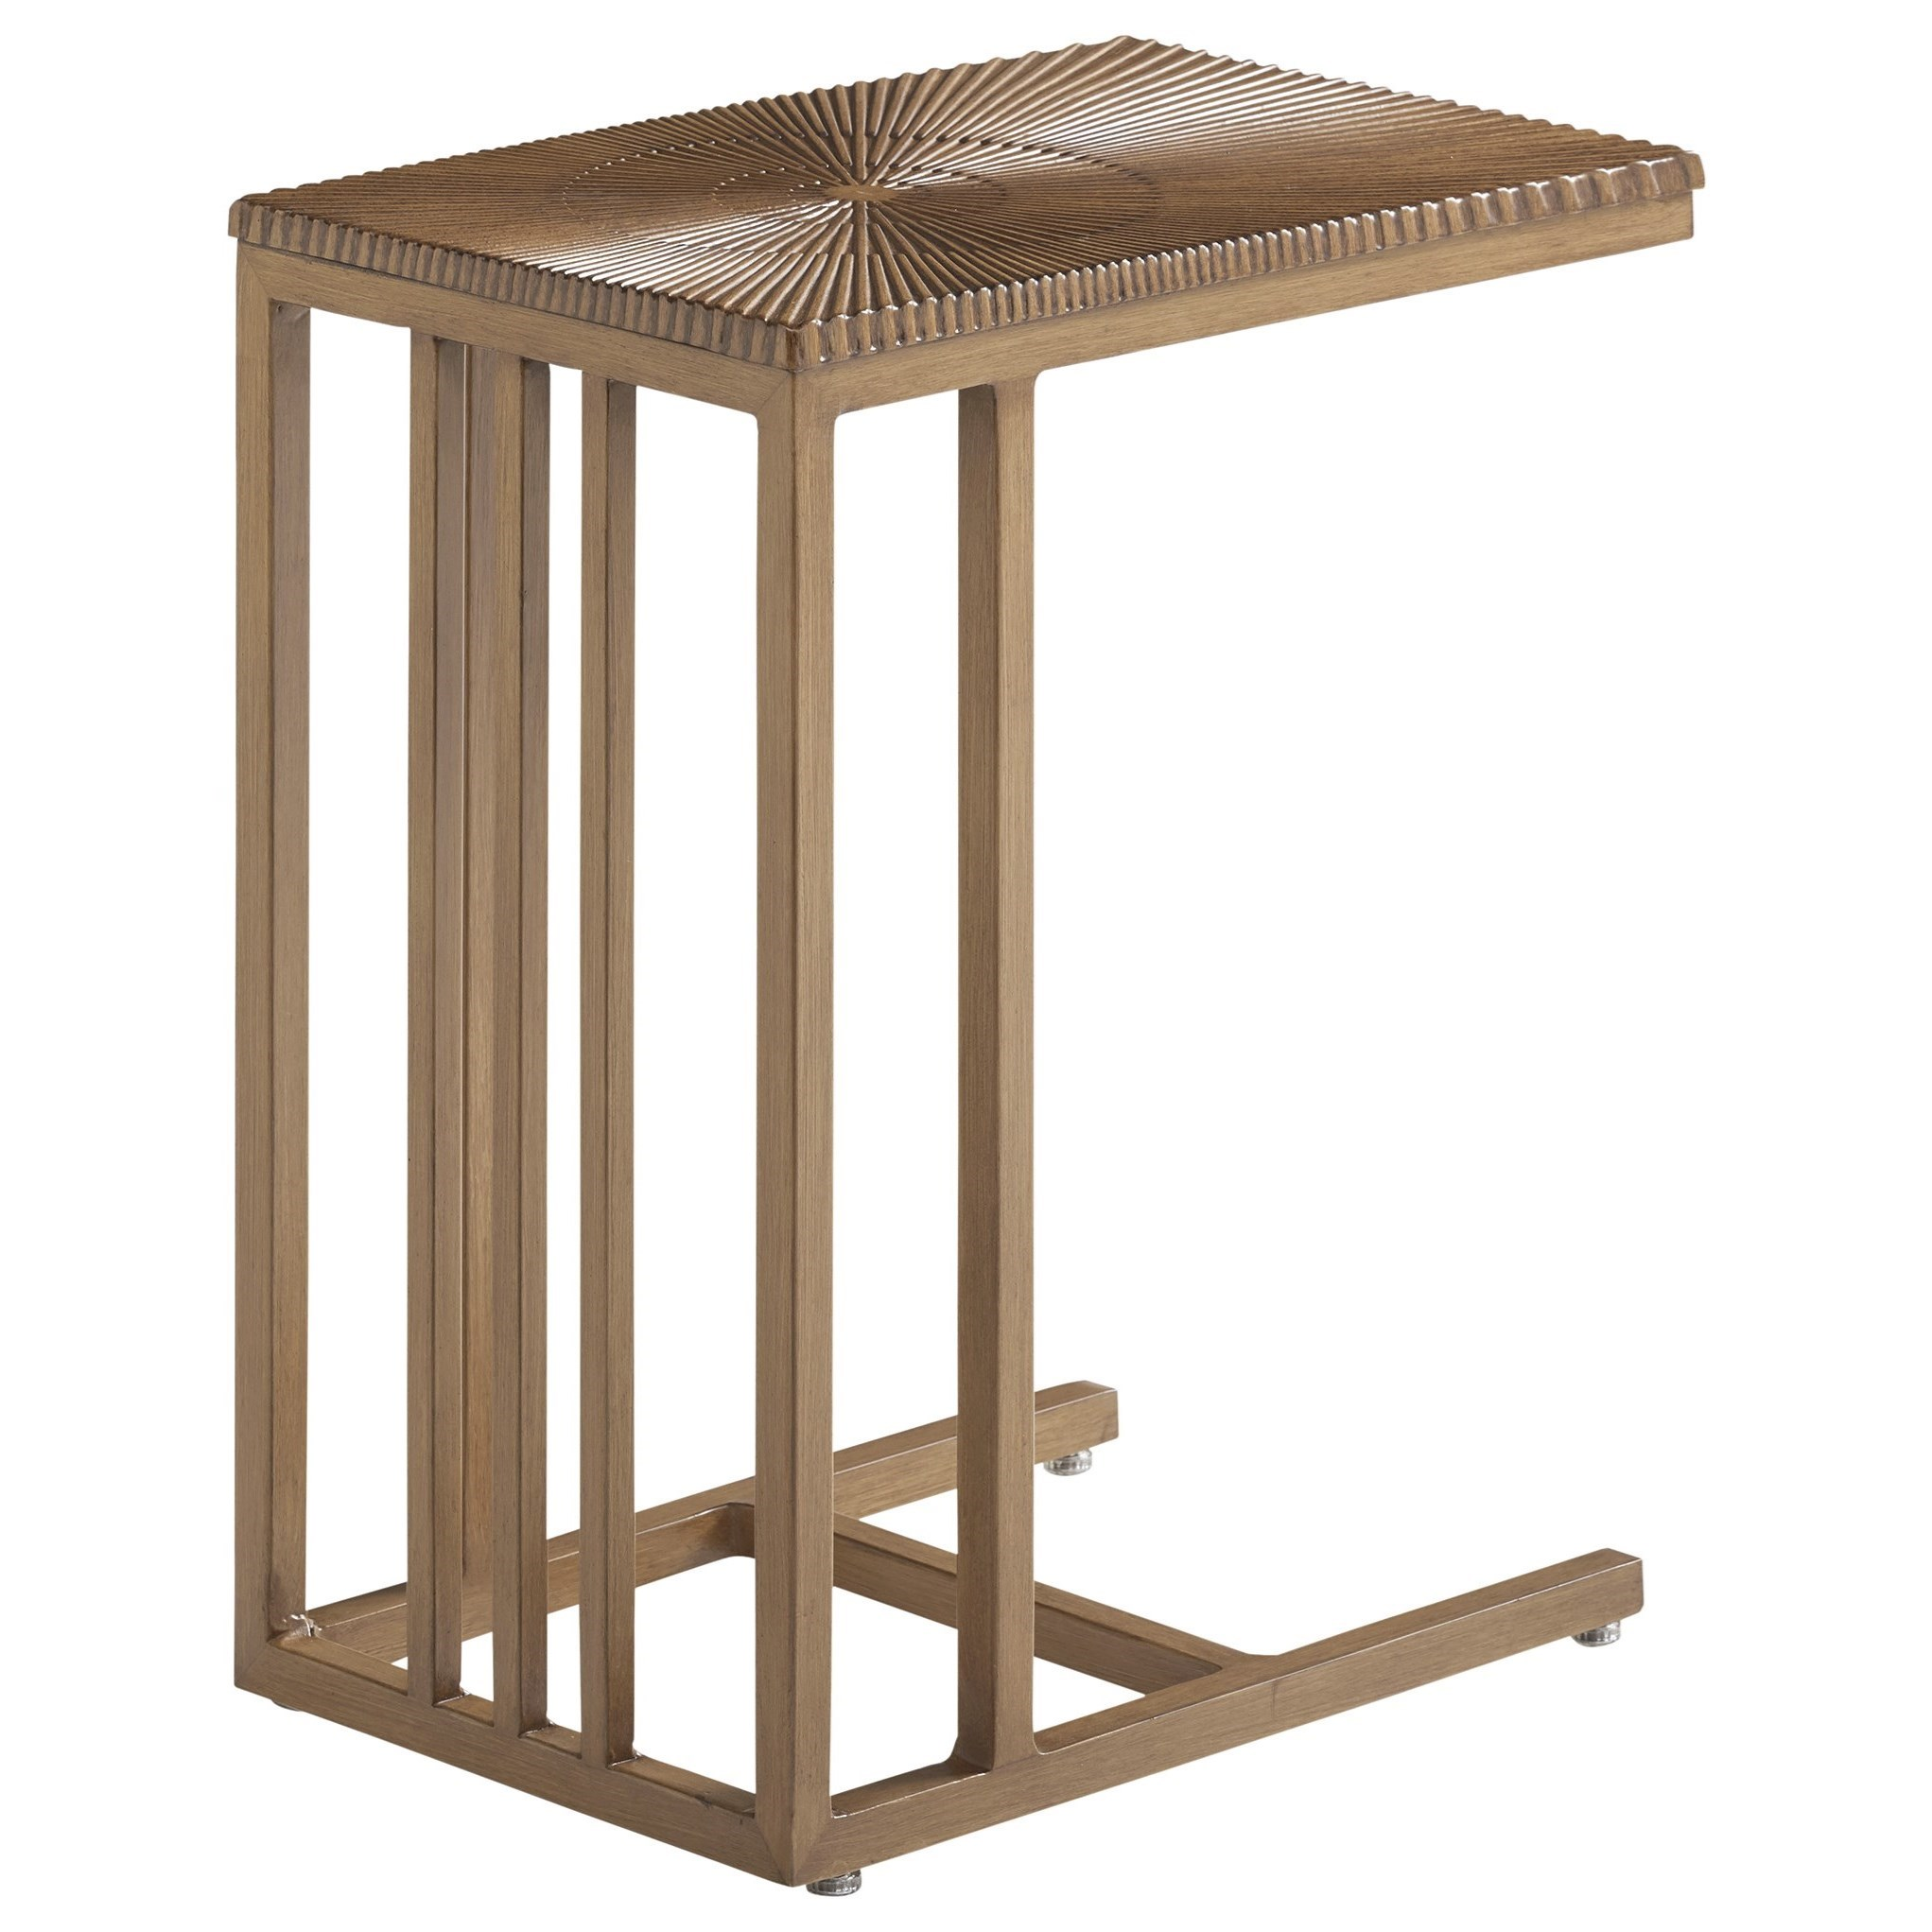 St Tropez Rectangular End Table by Tommy Bahama Outdoor Living at Baer's Furniture